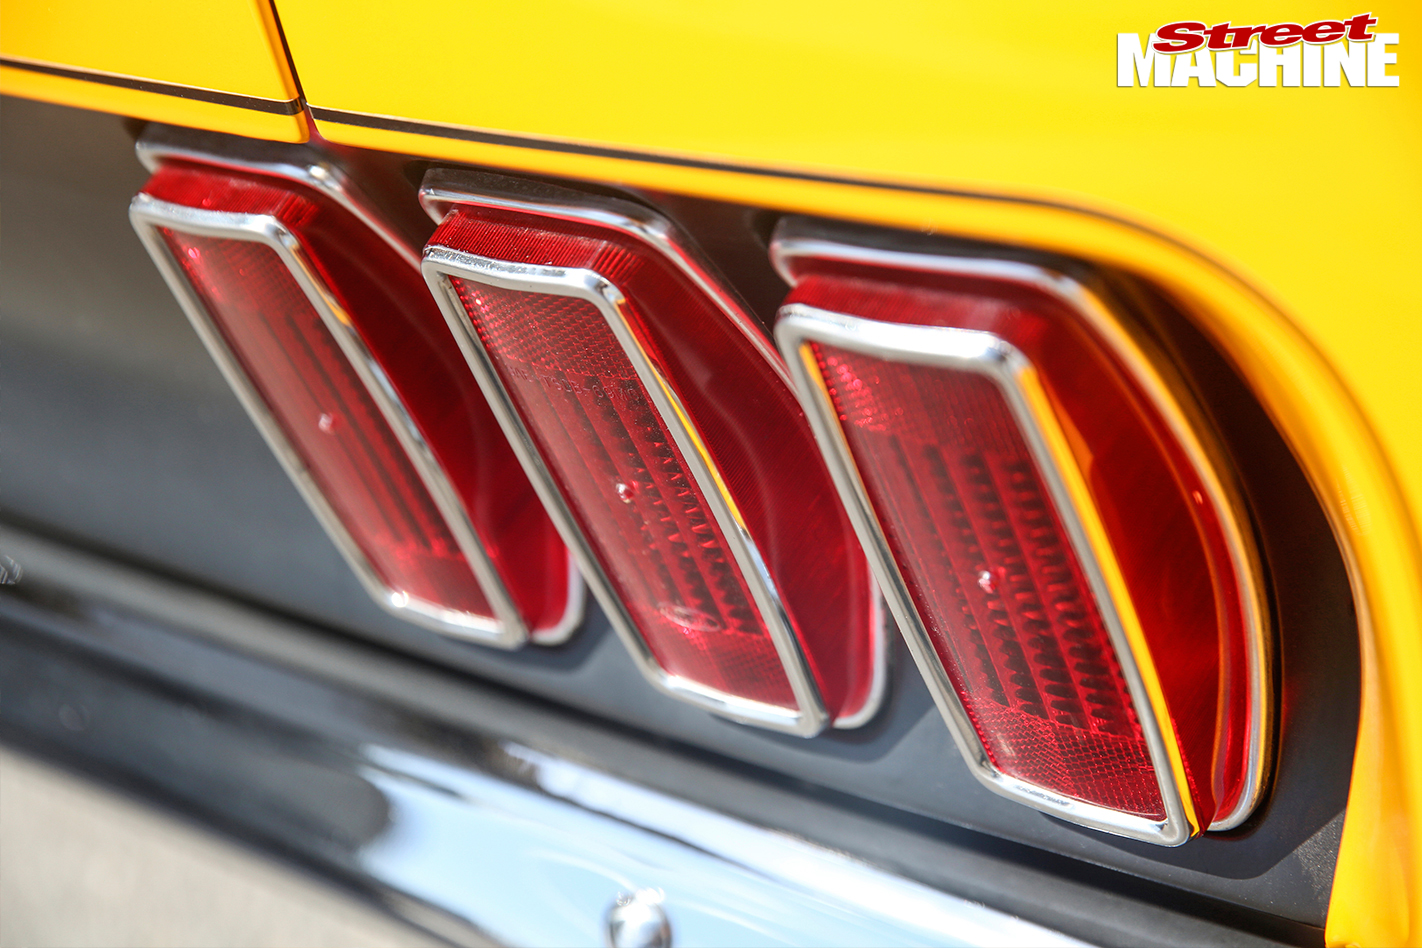 Ford -Mustang -BOSS-rear -taillights